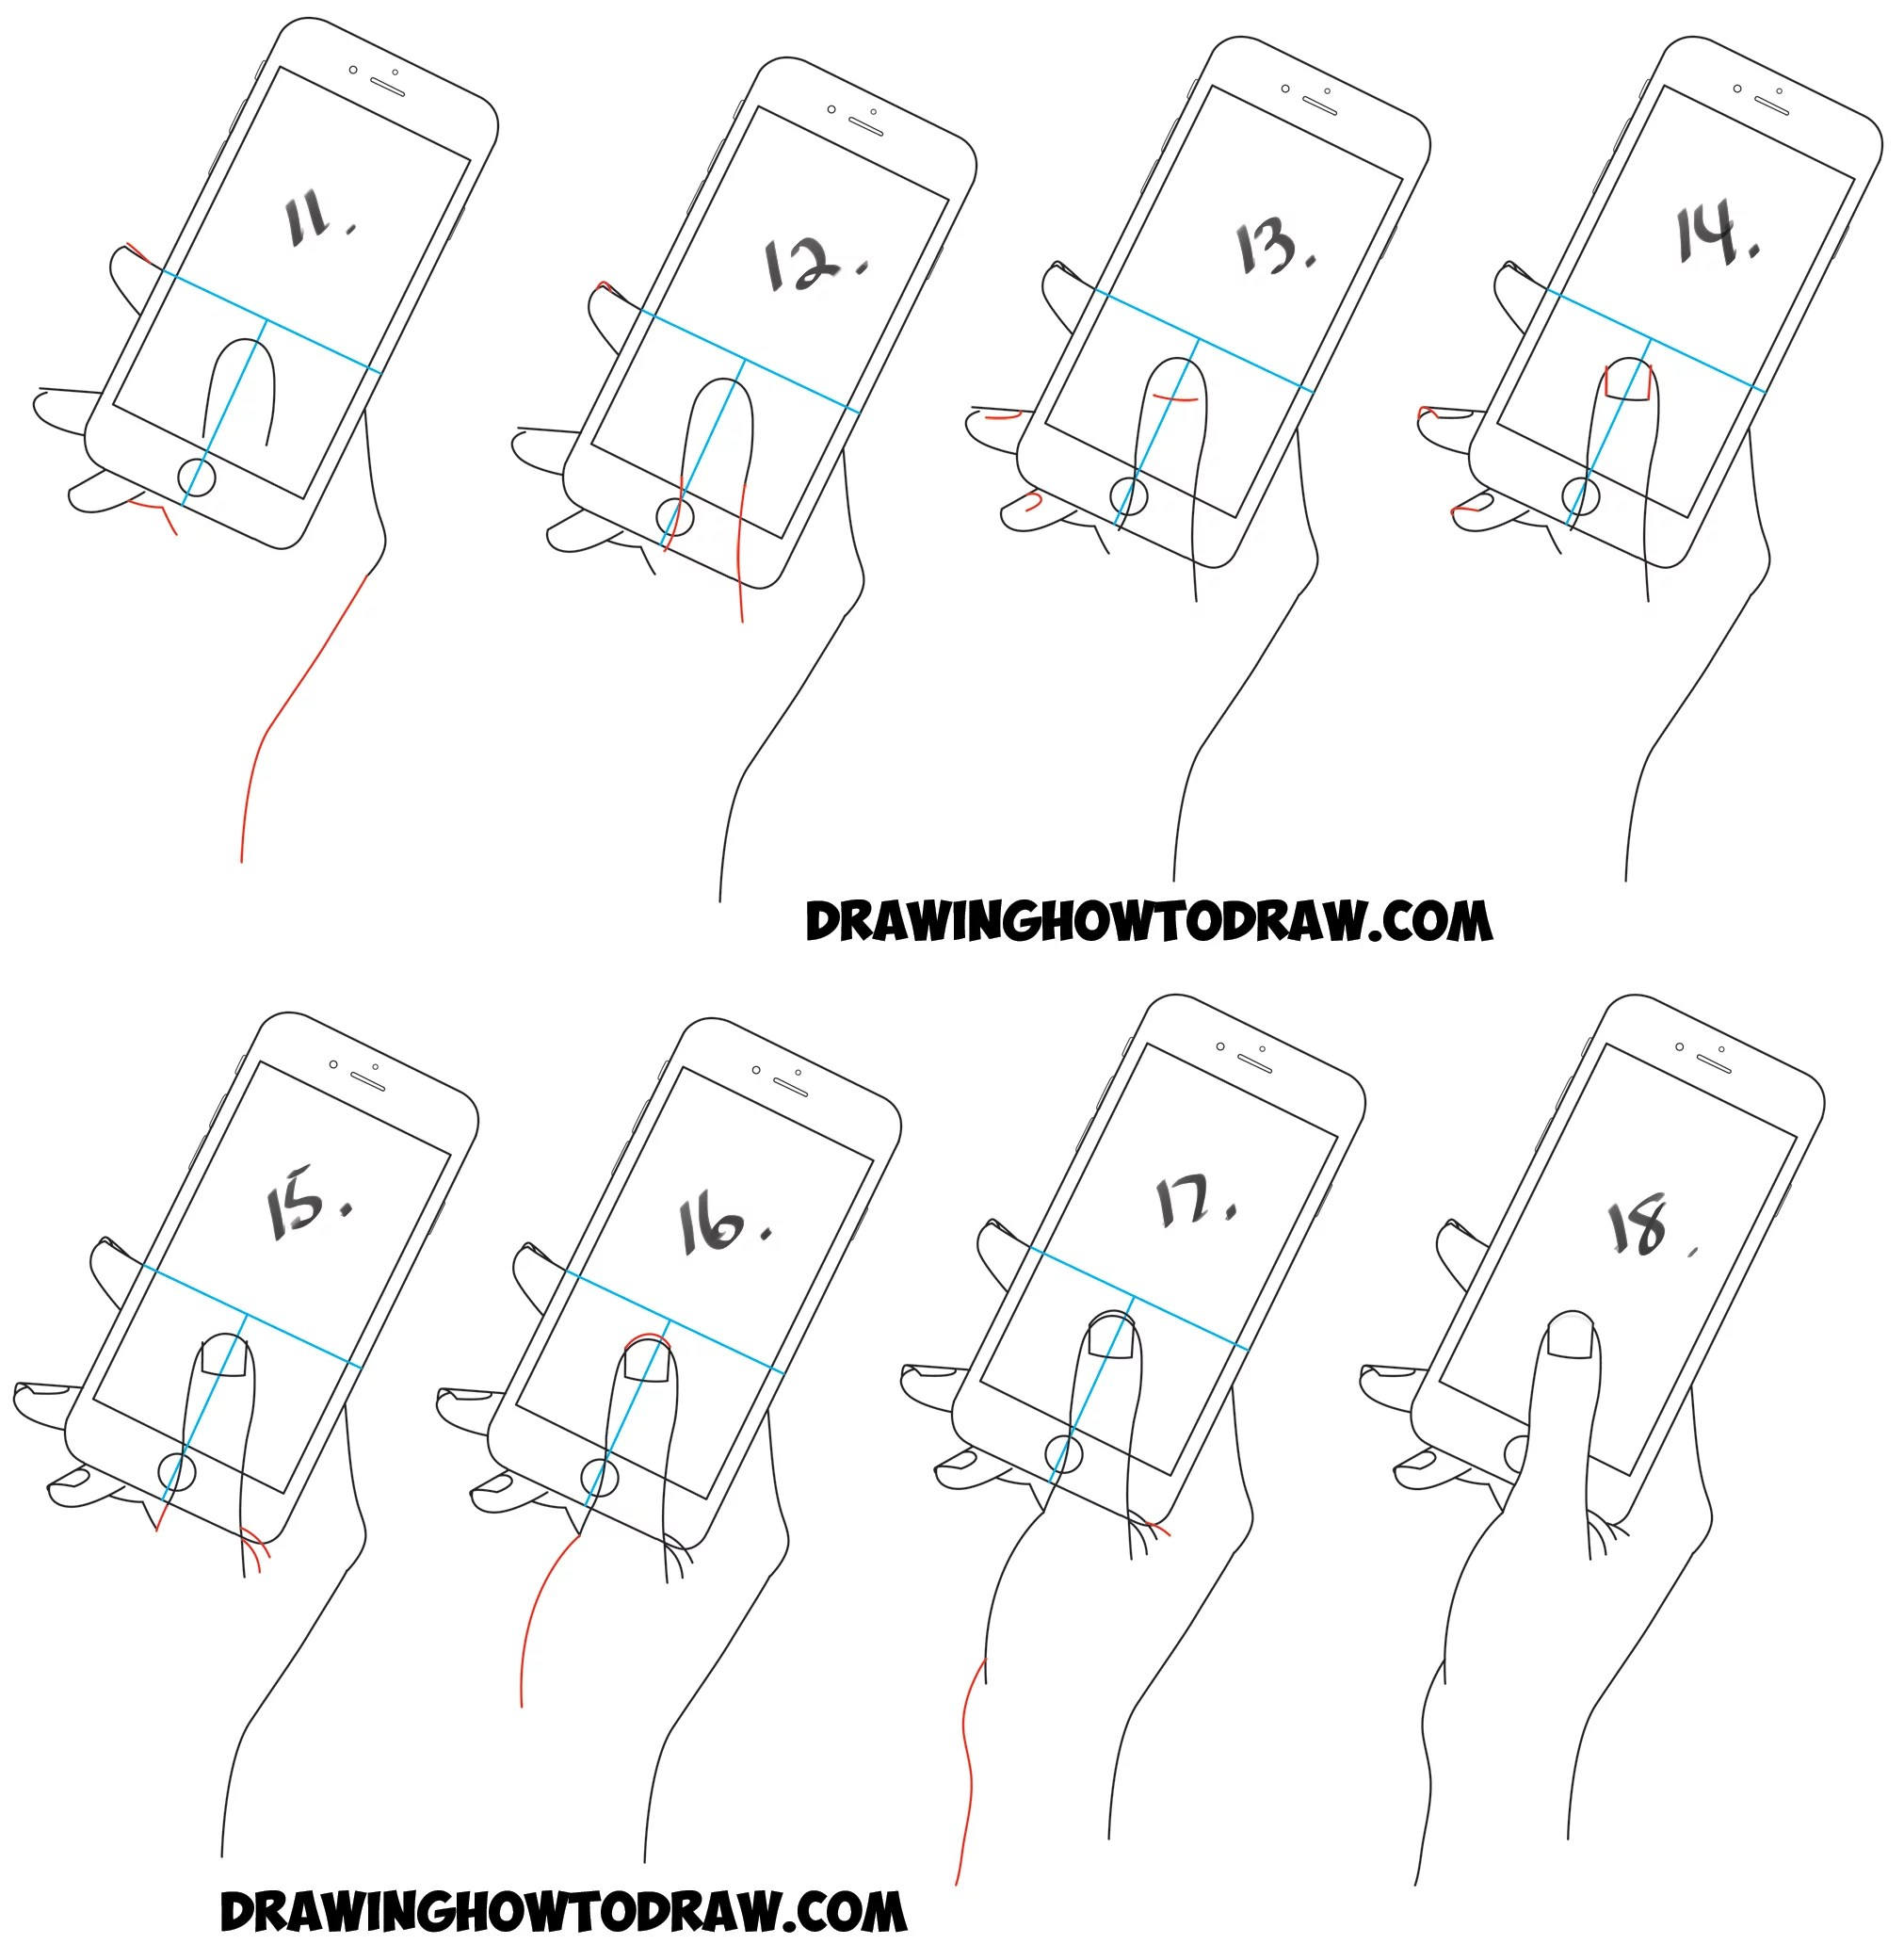 How to Draw a Hand Holding a Cell Phone / iPhone in Easy